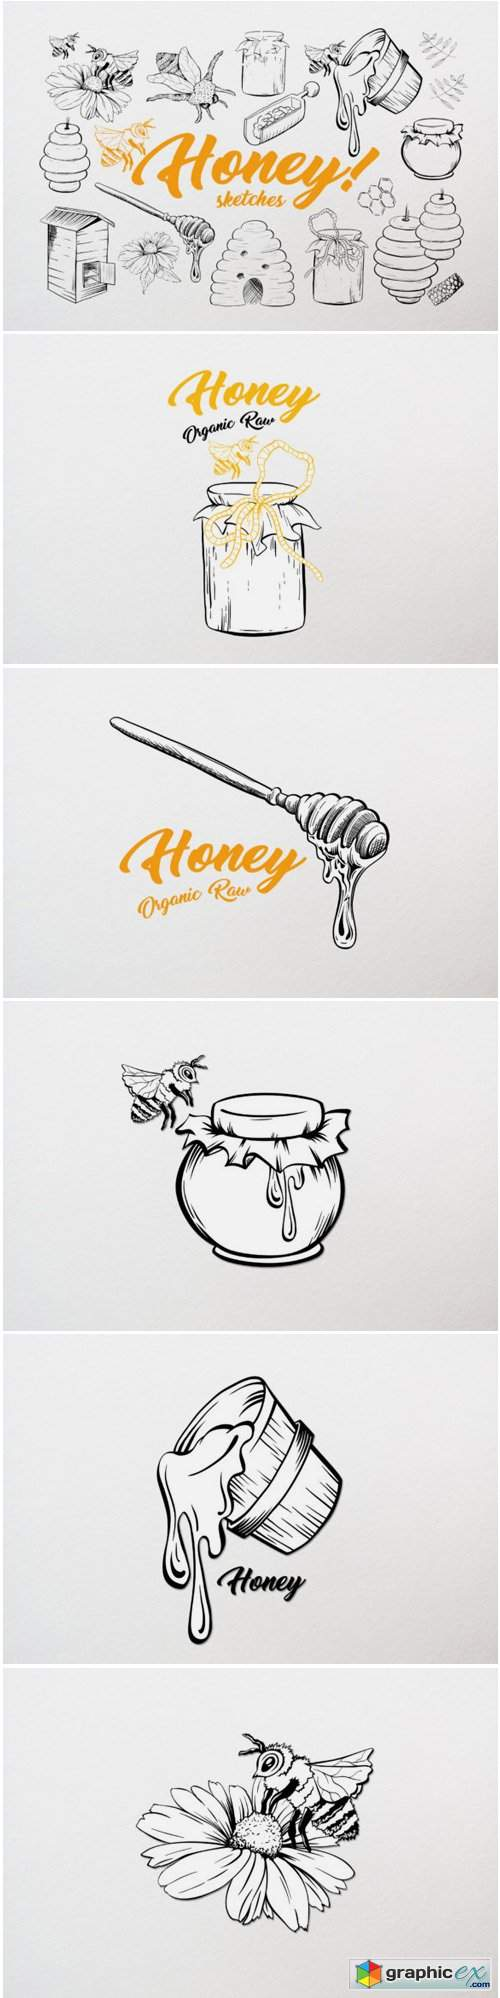 Honey Sketches Vector Drawings